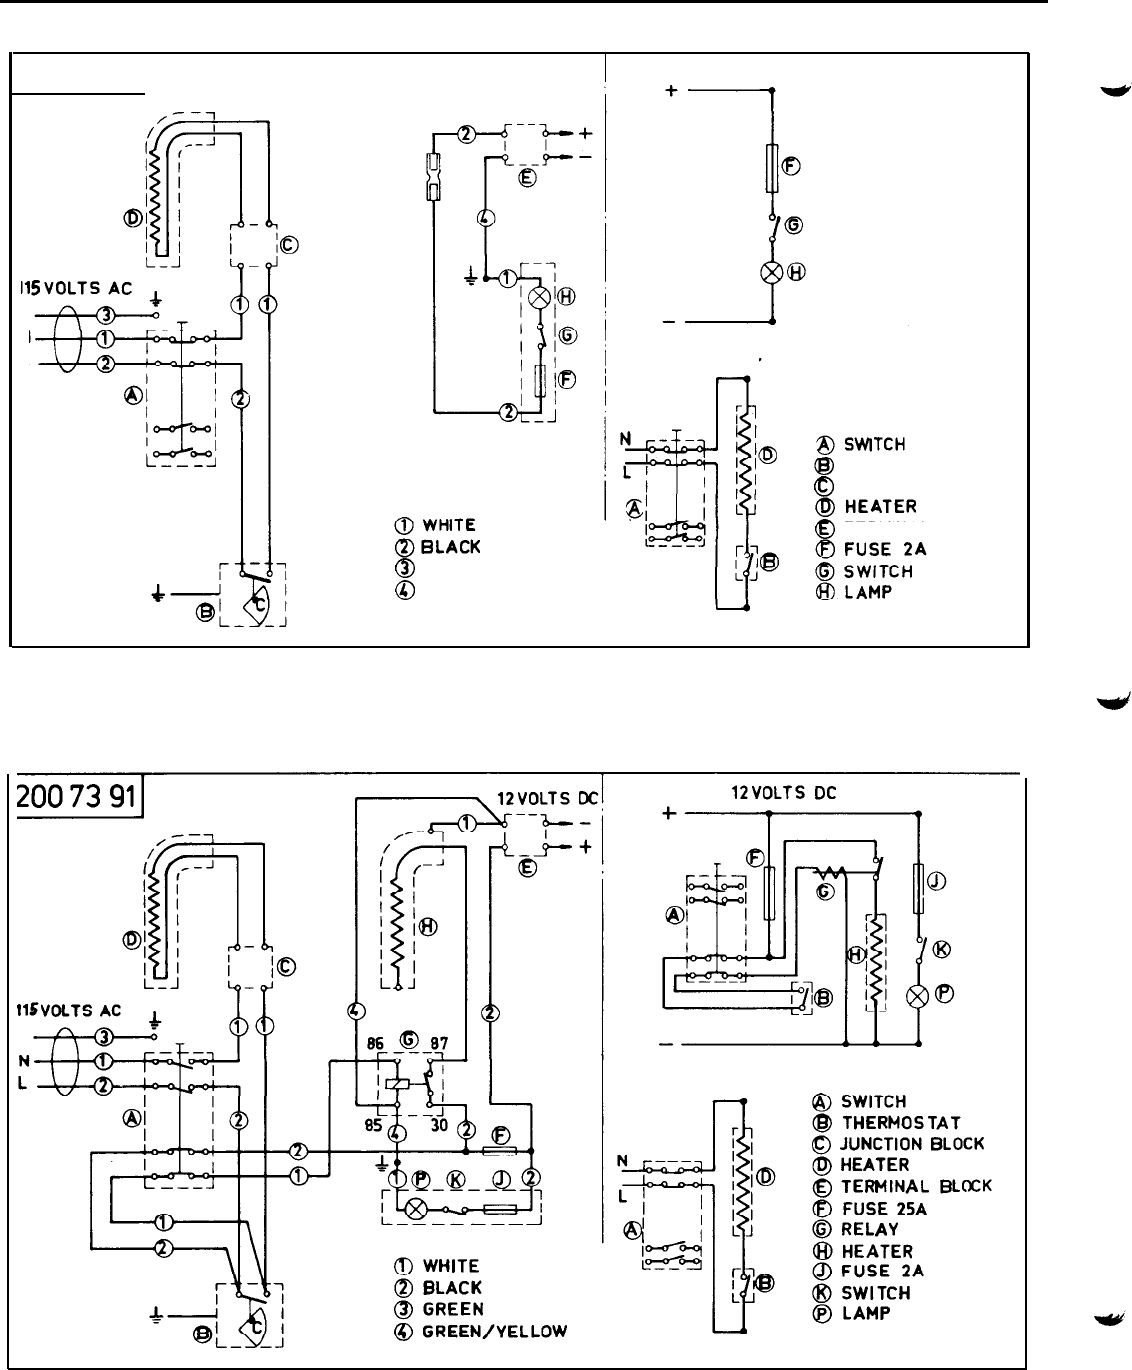 Electrolux Wiring Diagram Schematics Diagrams Ice Maker Schematic Rm4271 House Symbols U2022 Whirlpool